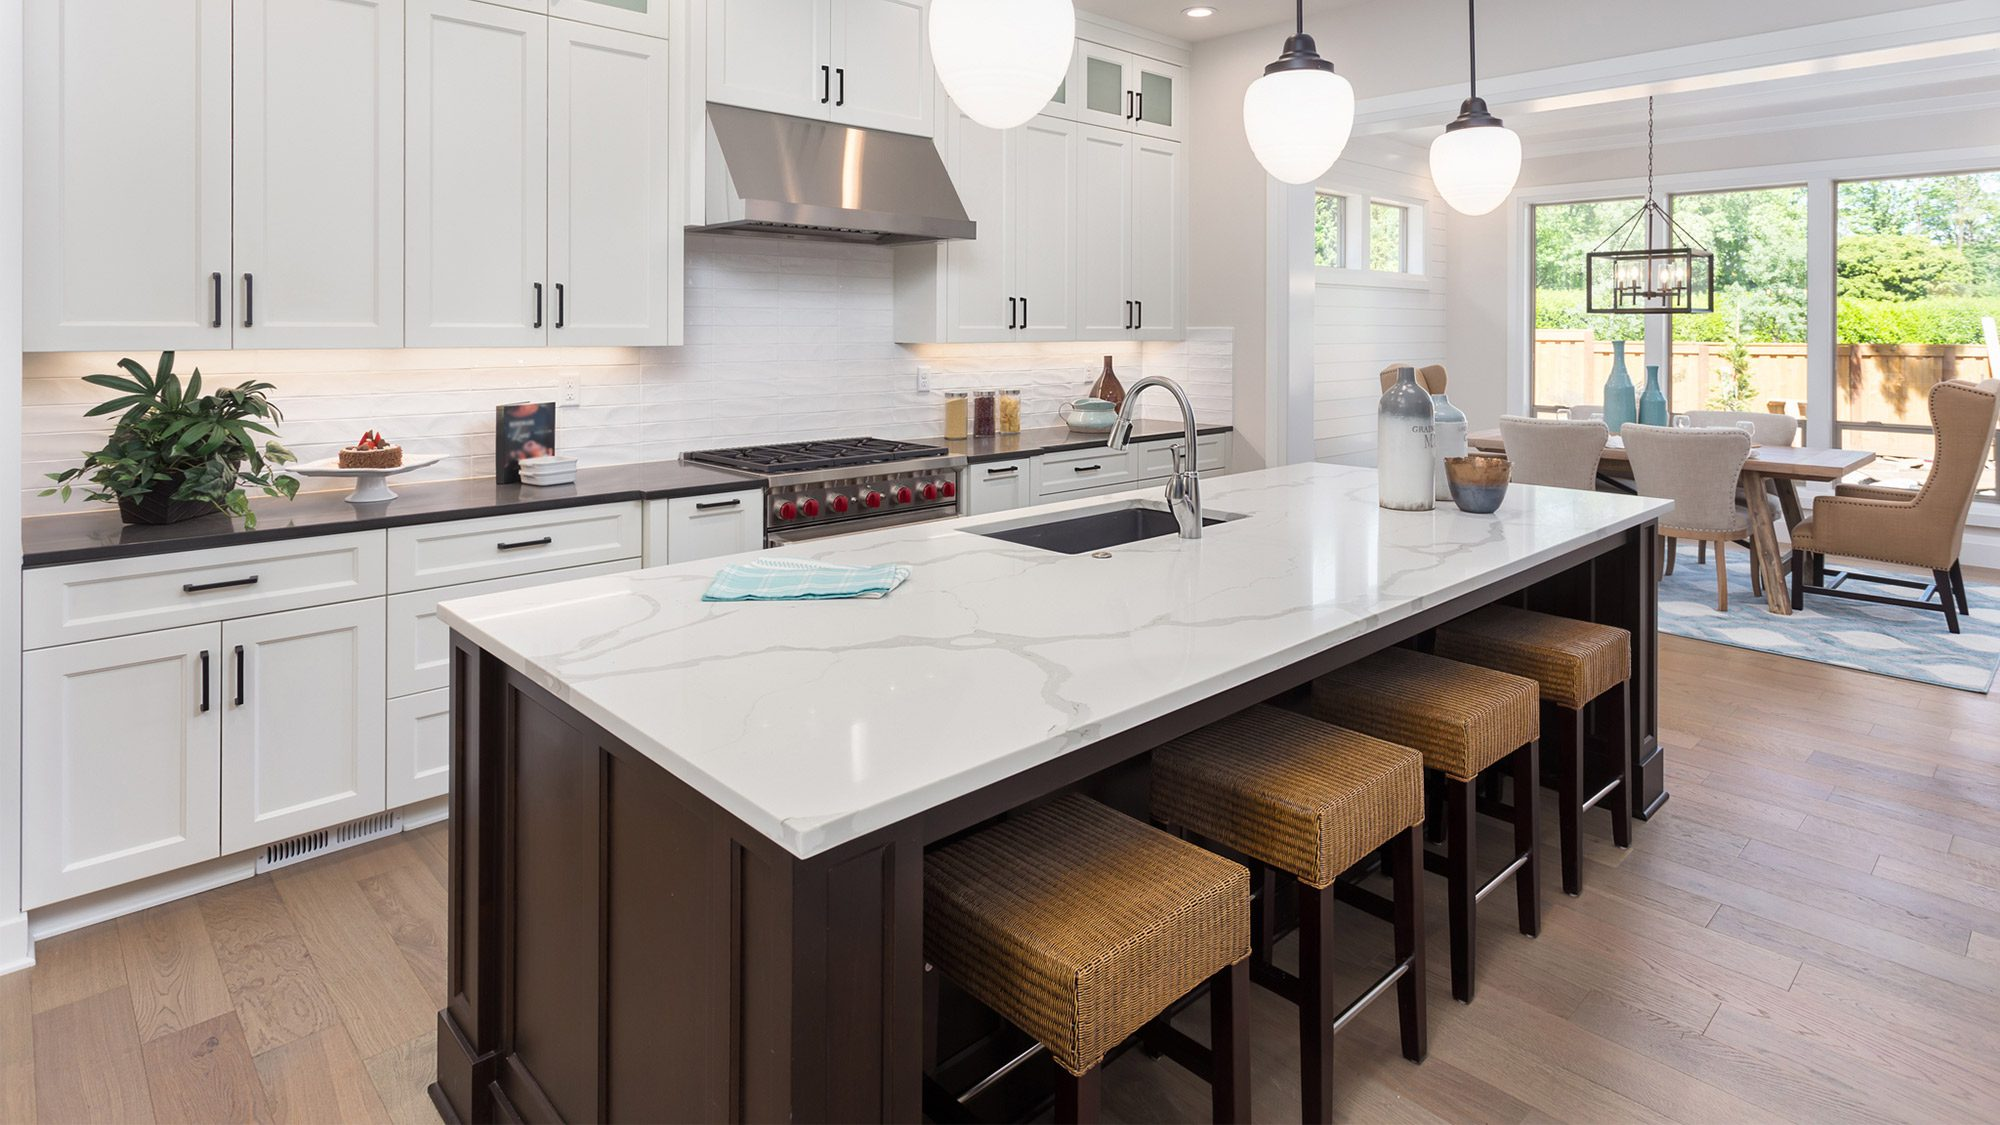 Kitchen Design Trends In 2018 The Hottest Kitchen And Bathroom Trends Of 2018 Realtor